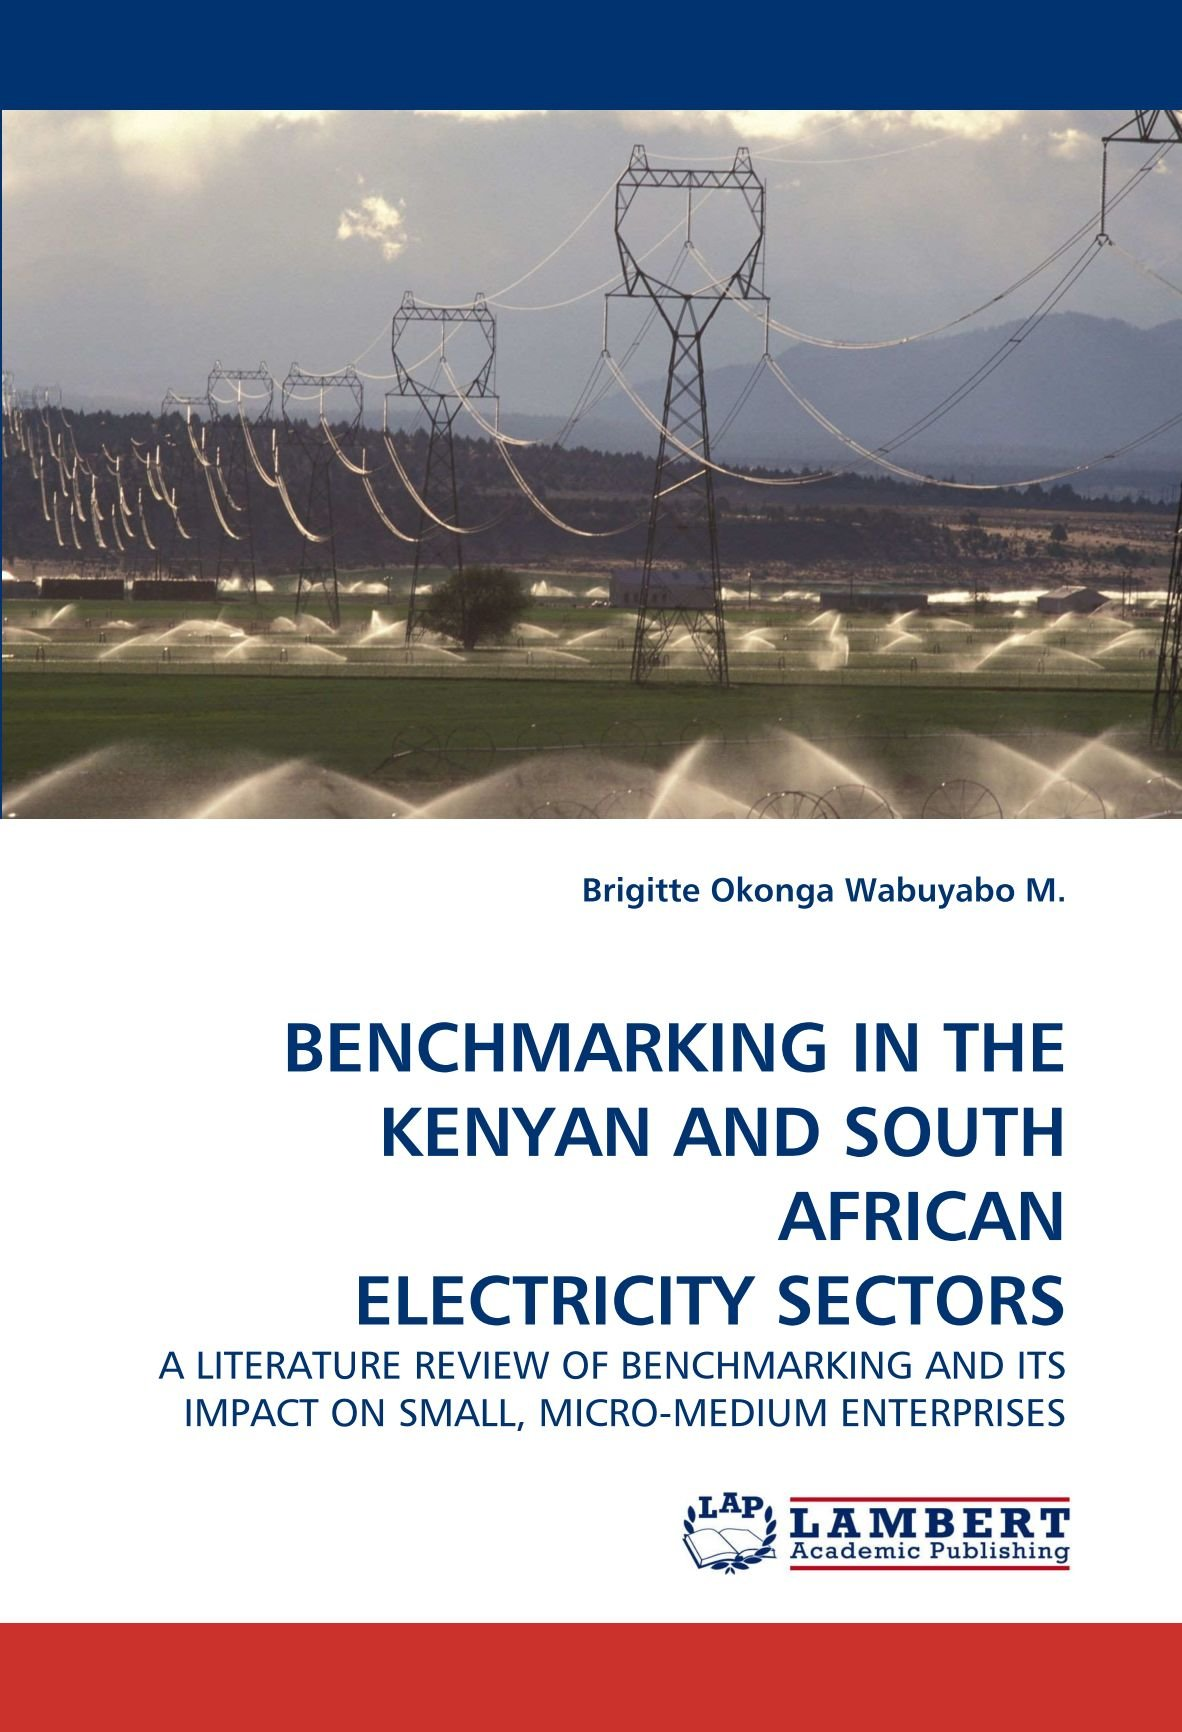 BENCHMARKING IN THE KENYAN AND SOUTH AFRICAN ELECTRICITY SECTORS: A LITERATURE REVIEW OF BENCHMARKING AND ITS IMPACT ON SMALL, MICRO-MEDIUM ENTERPRISES ebook